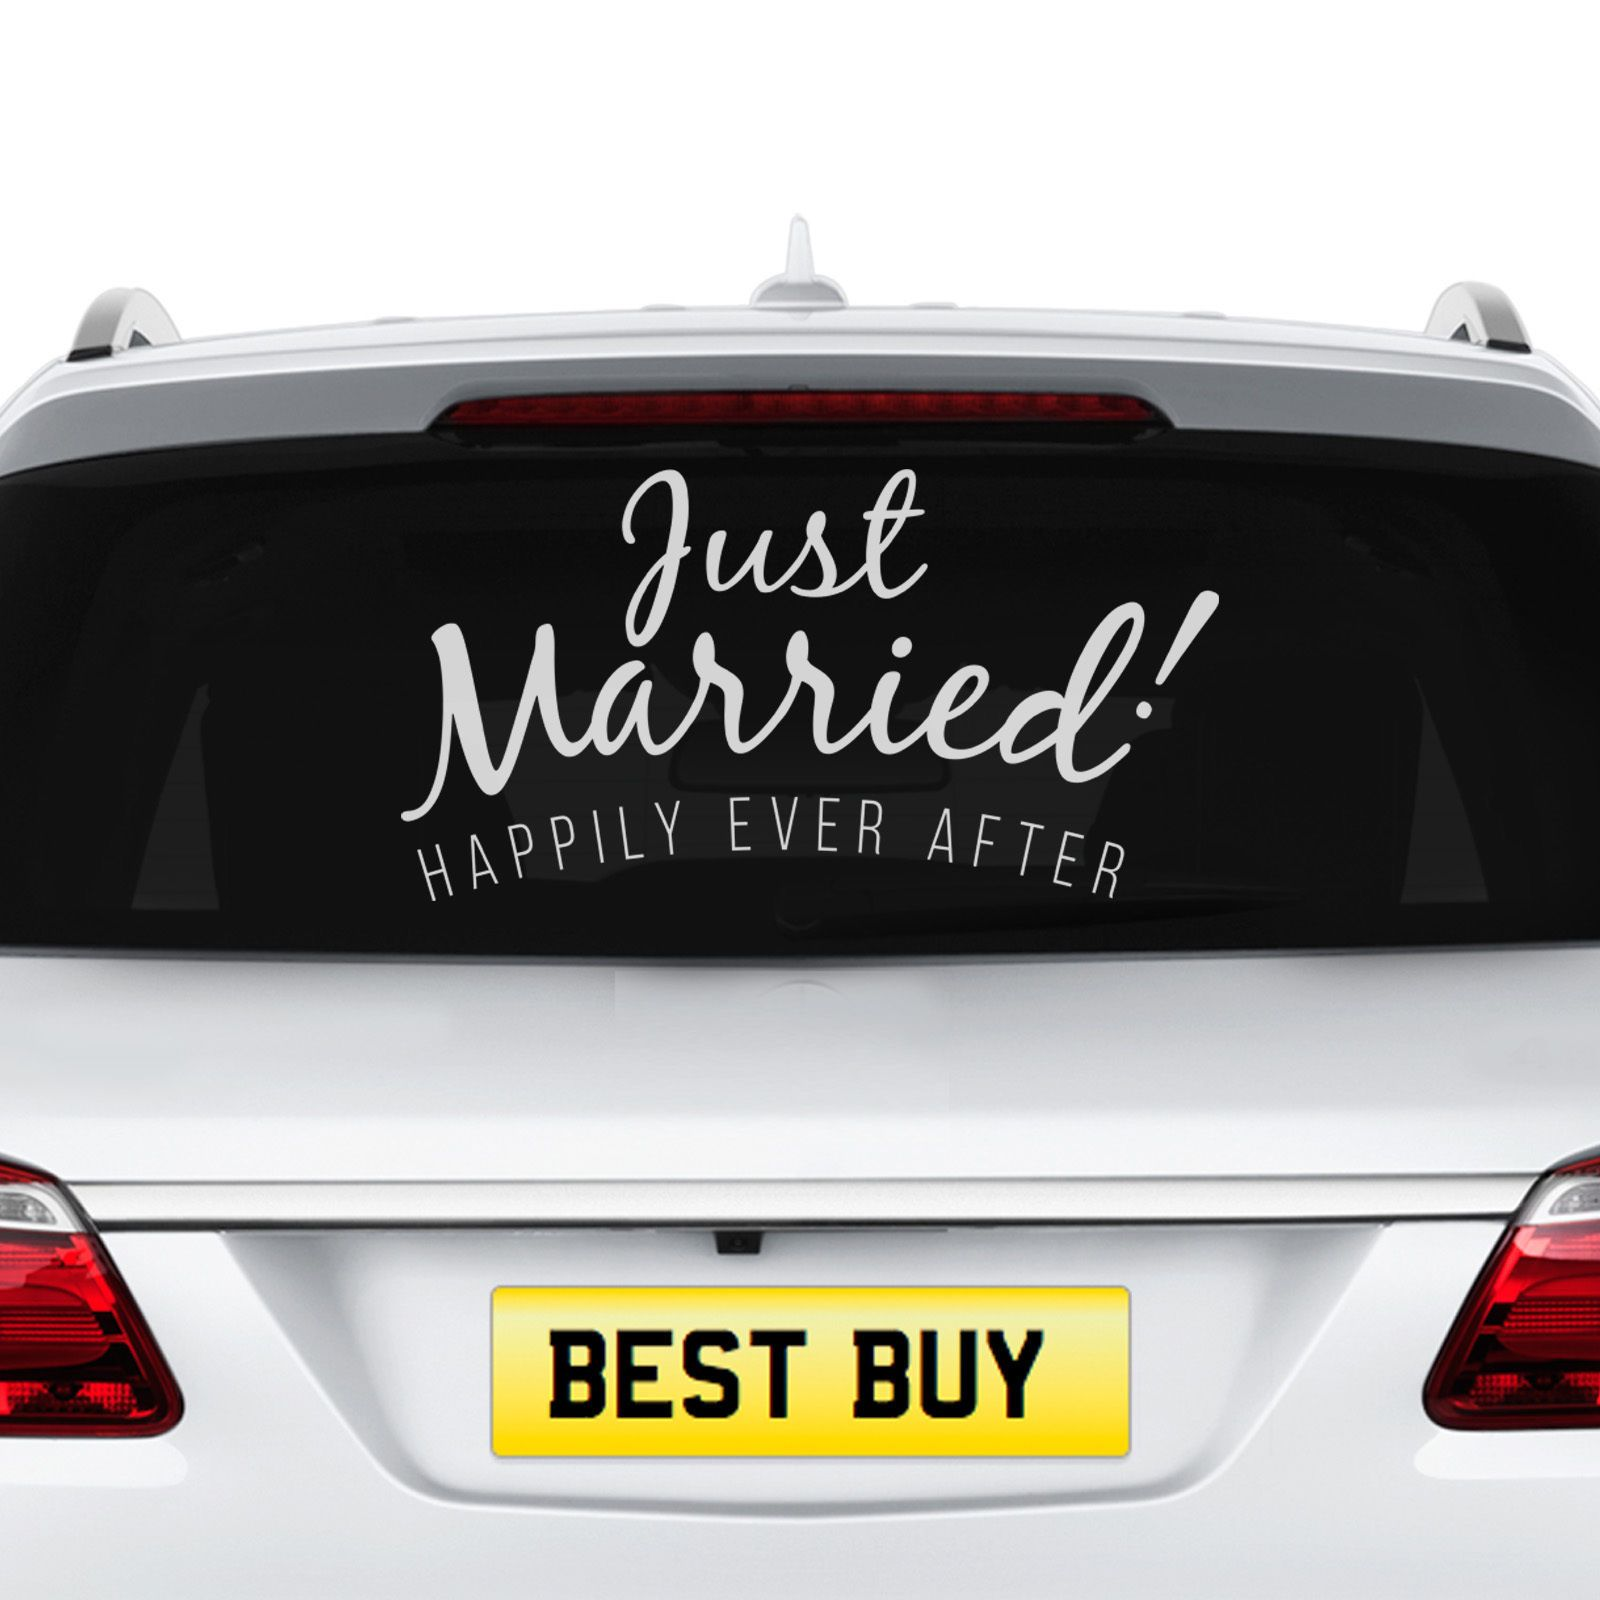 Wedding car decorations just married  Just Married Wedding Car Removable Decal Vehicle Sticker Window